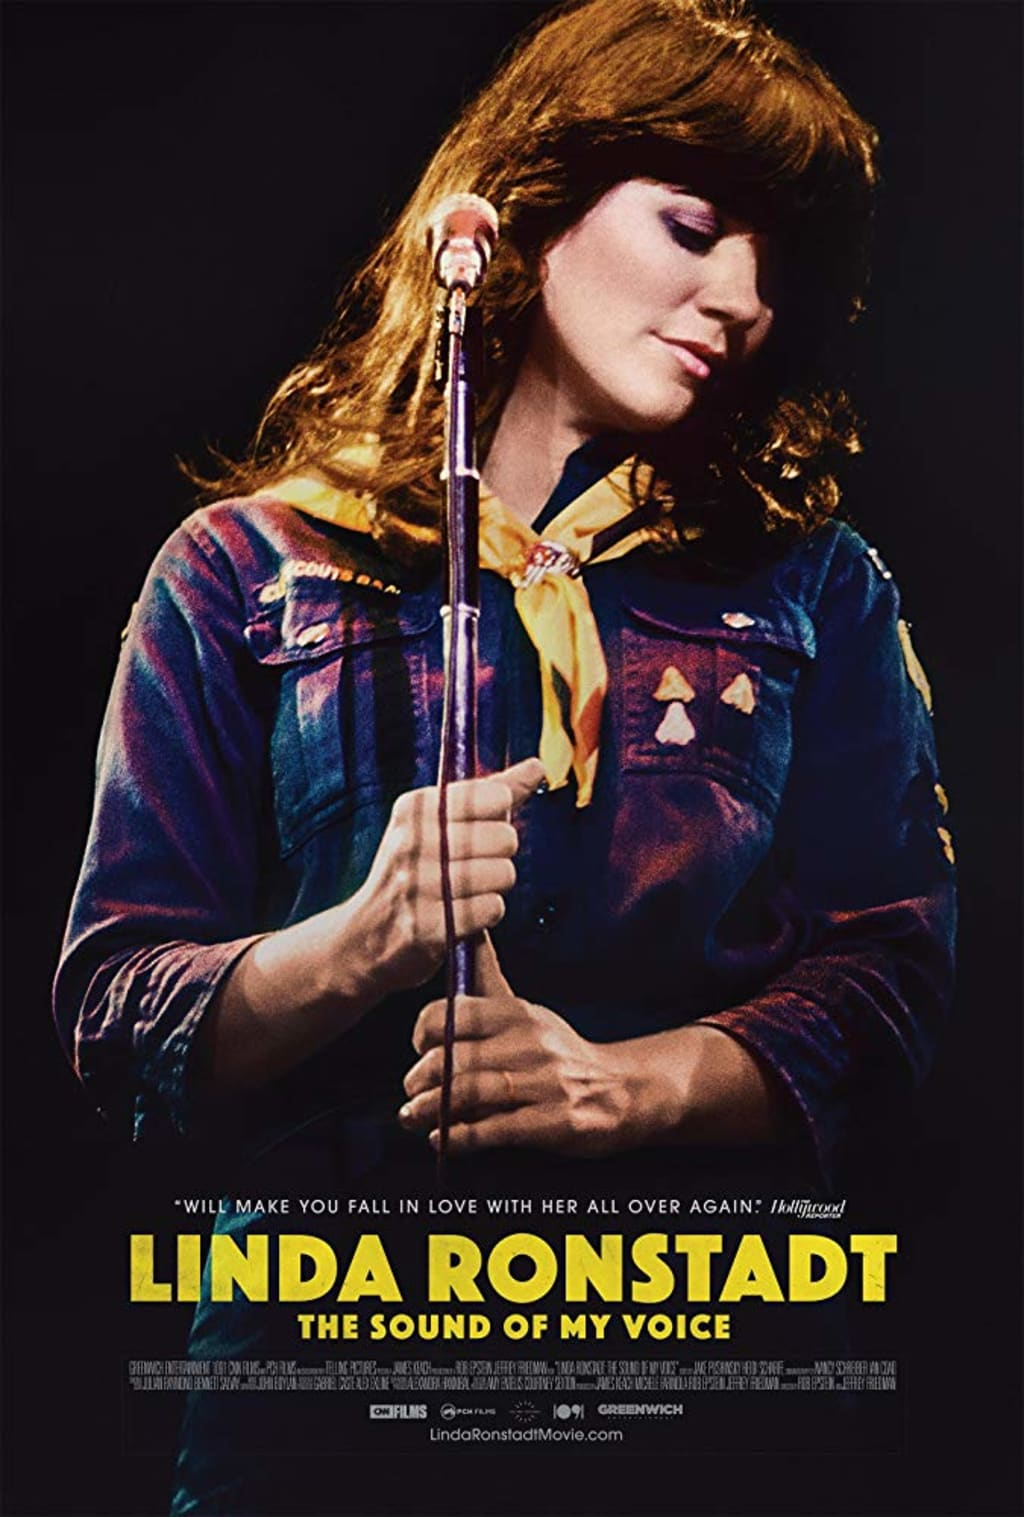 Review of 'Linda Ronstadt: The Sound of My Voice'